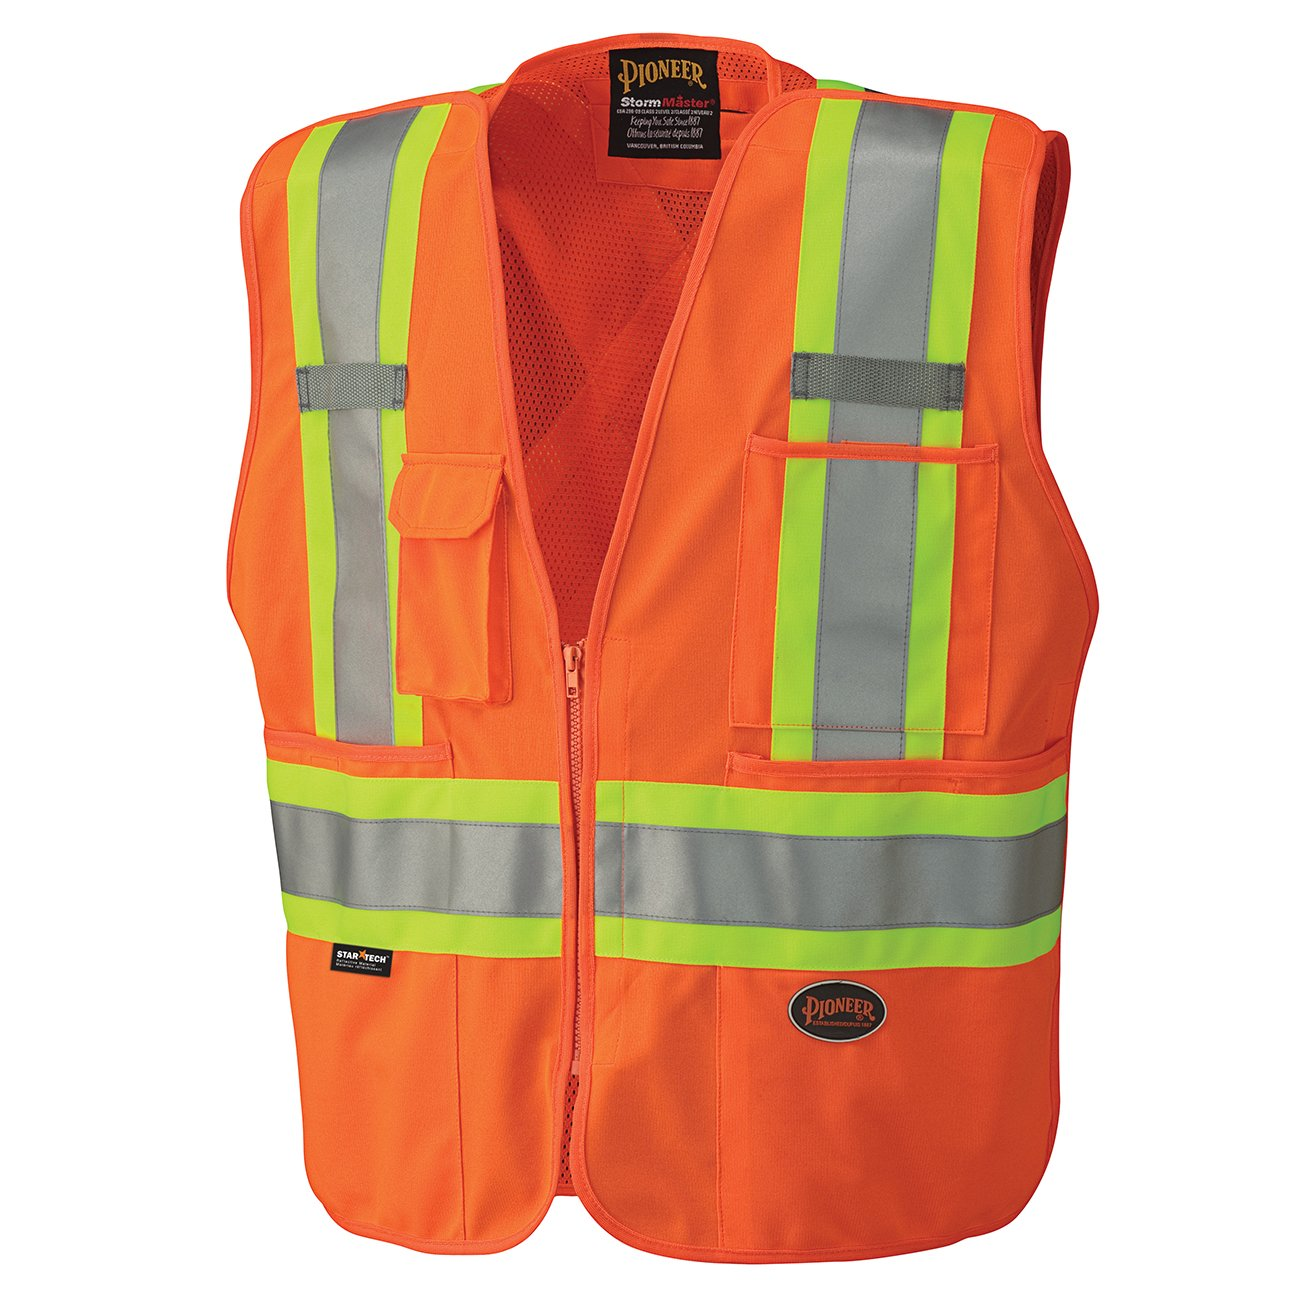 Pioneer V1021150-5XL Tear-Away and Front Zipper High Visibility Safety Vest, Mesh Back, Orange, 5XL